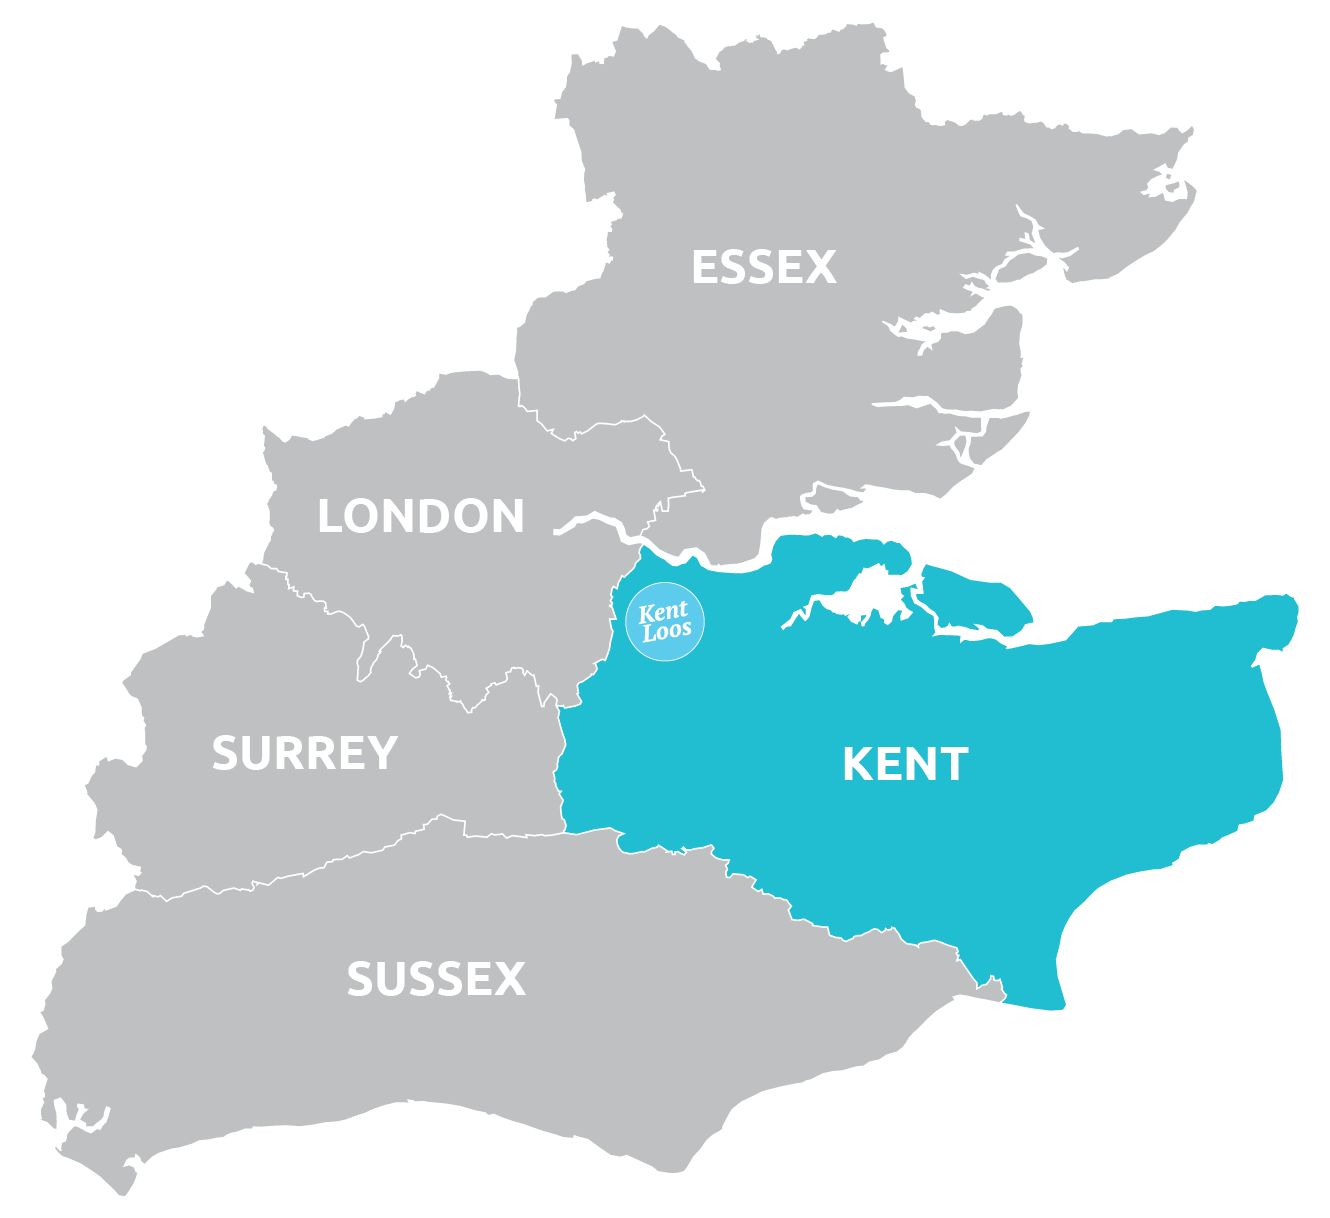 Kent Loos Coverage Area